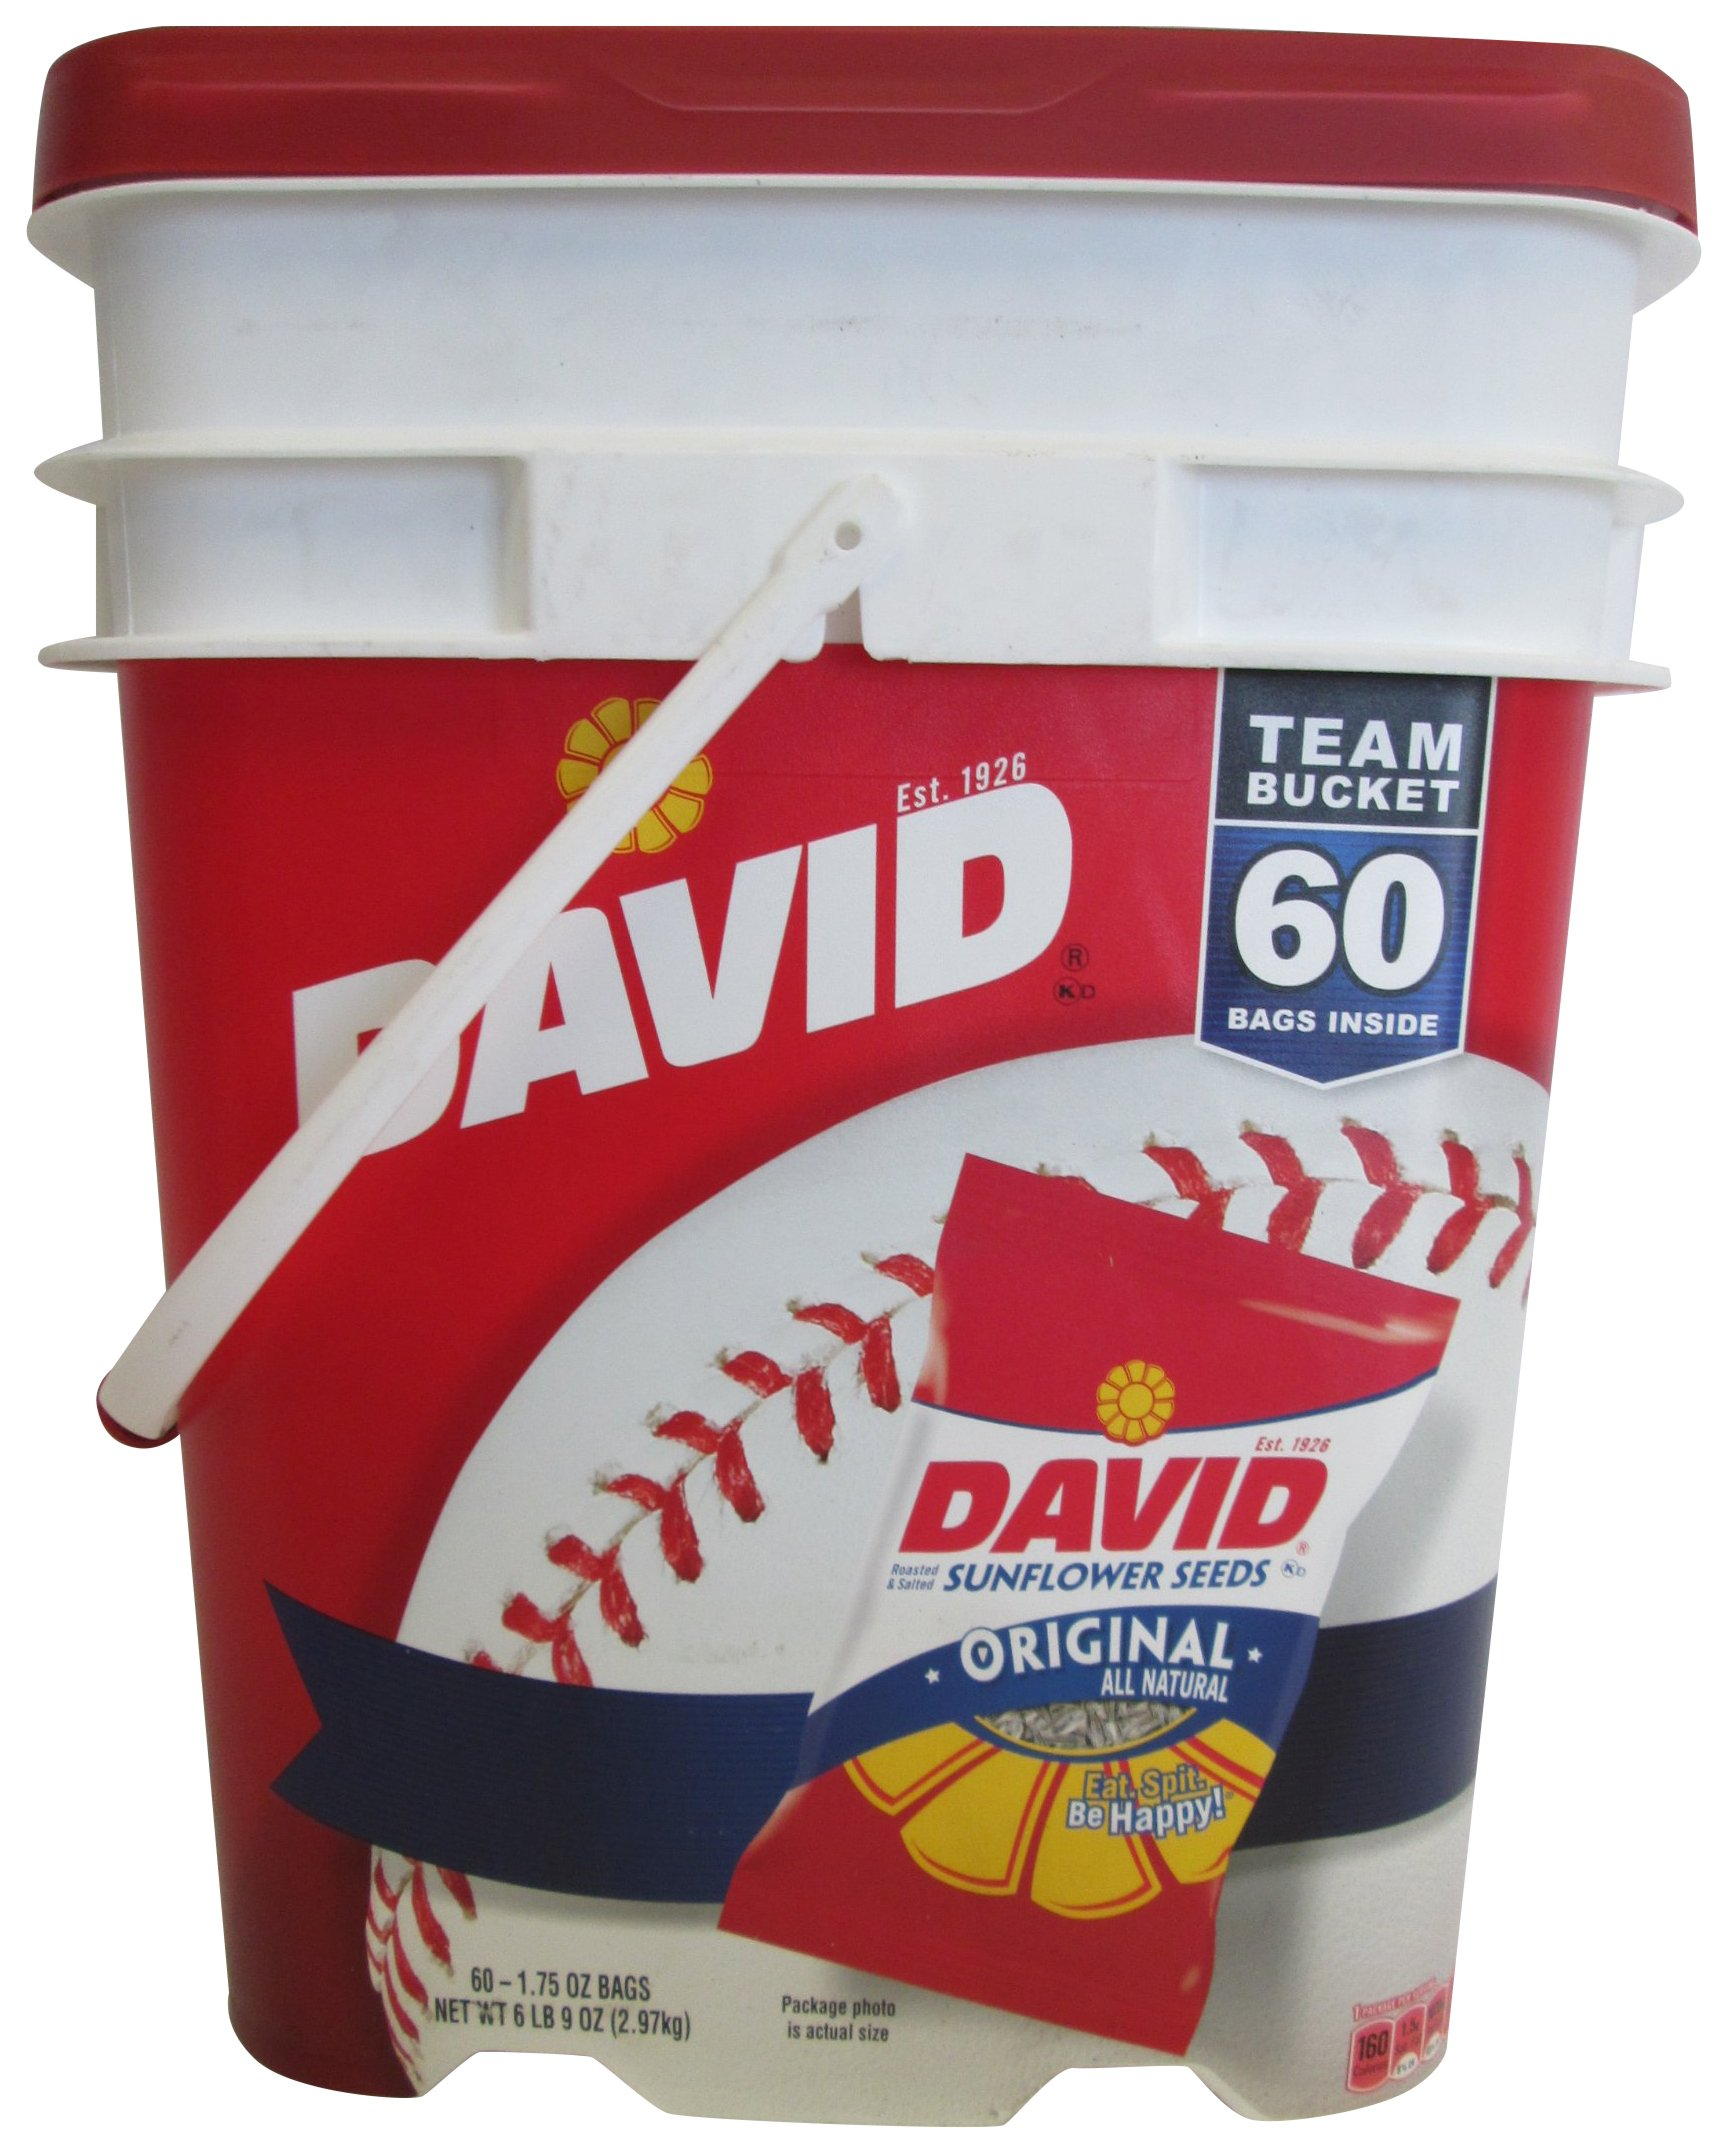 David Sunflower Seeds Roasted & Salted Original ALL Natural, Team Bucket 60 Pack of 1.75 Oz Bags by DAVID Seeds by Sinphleng